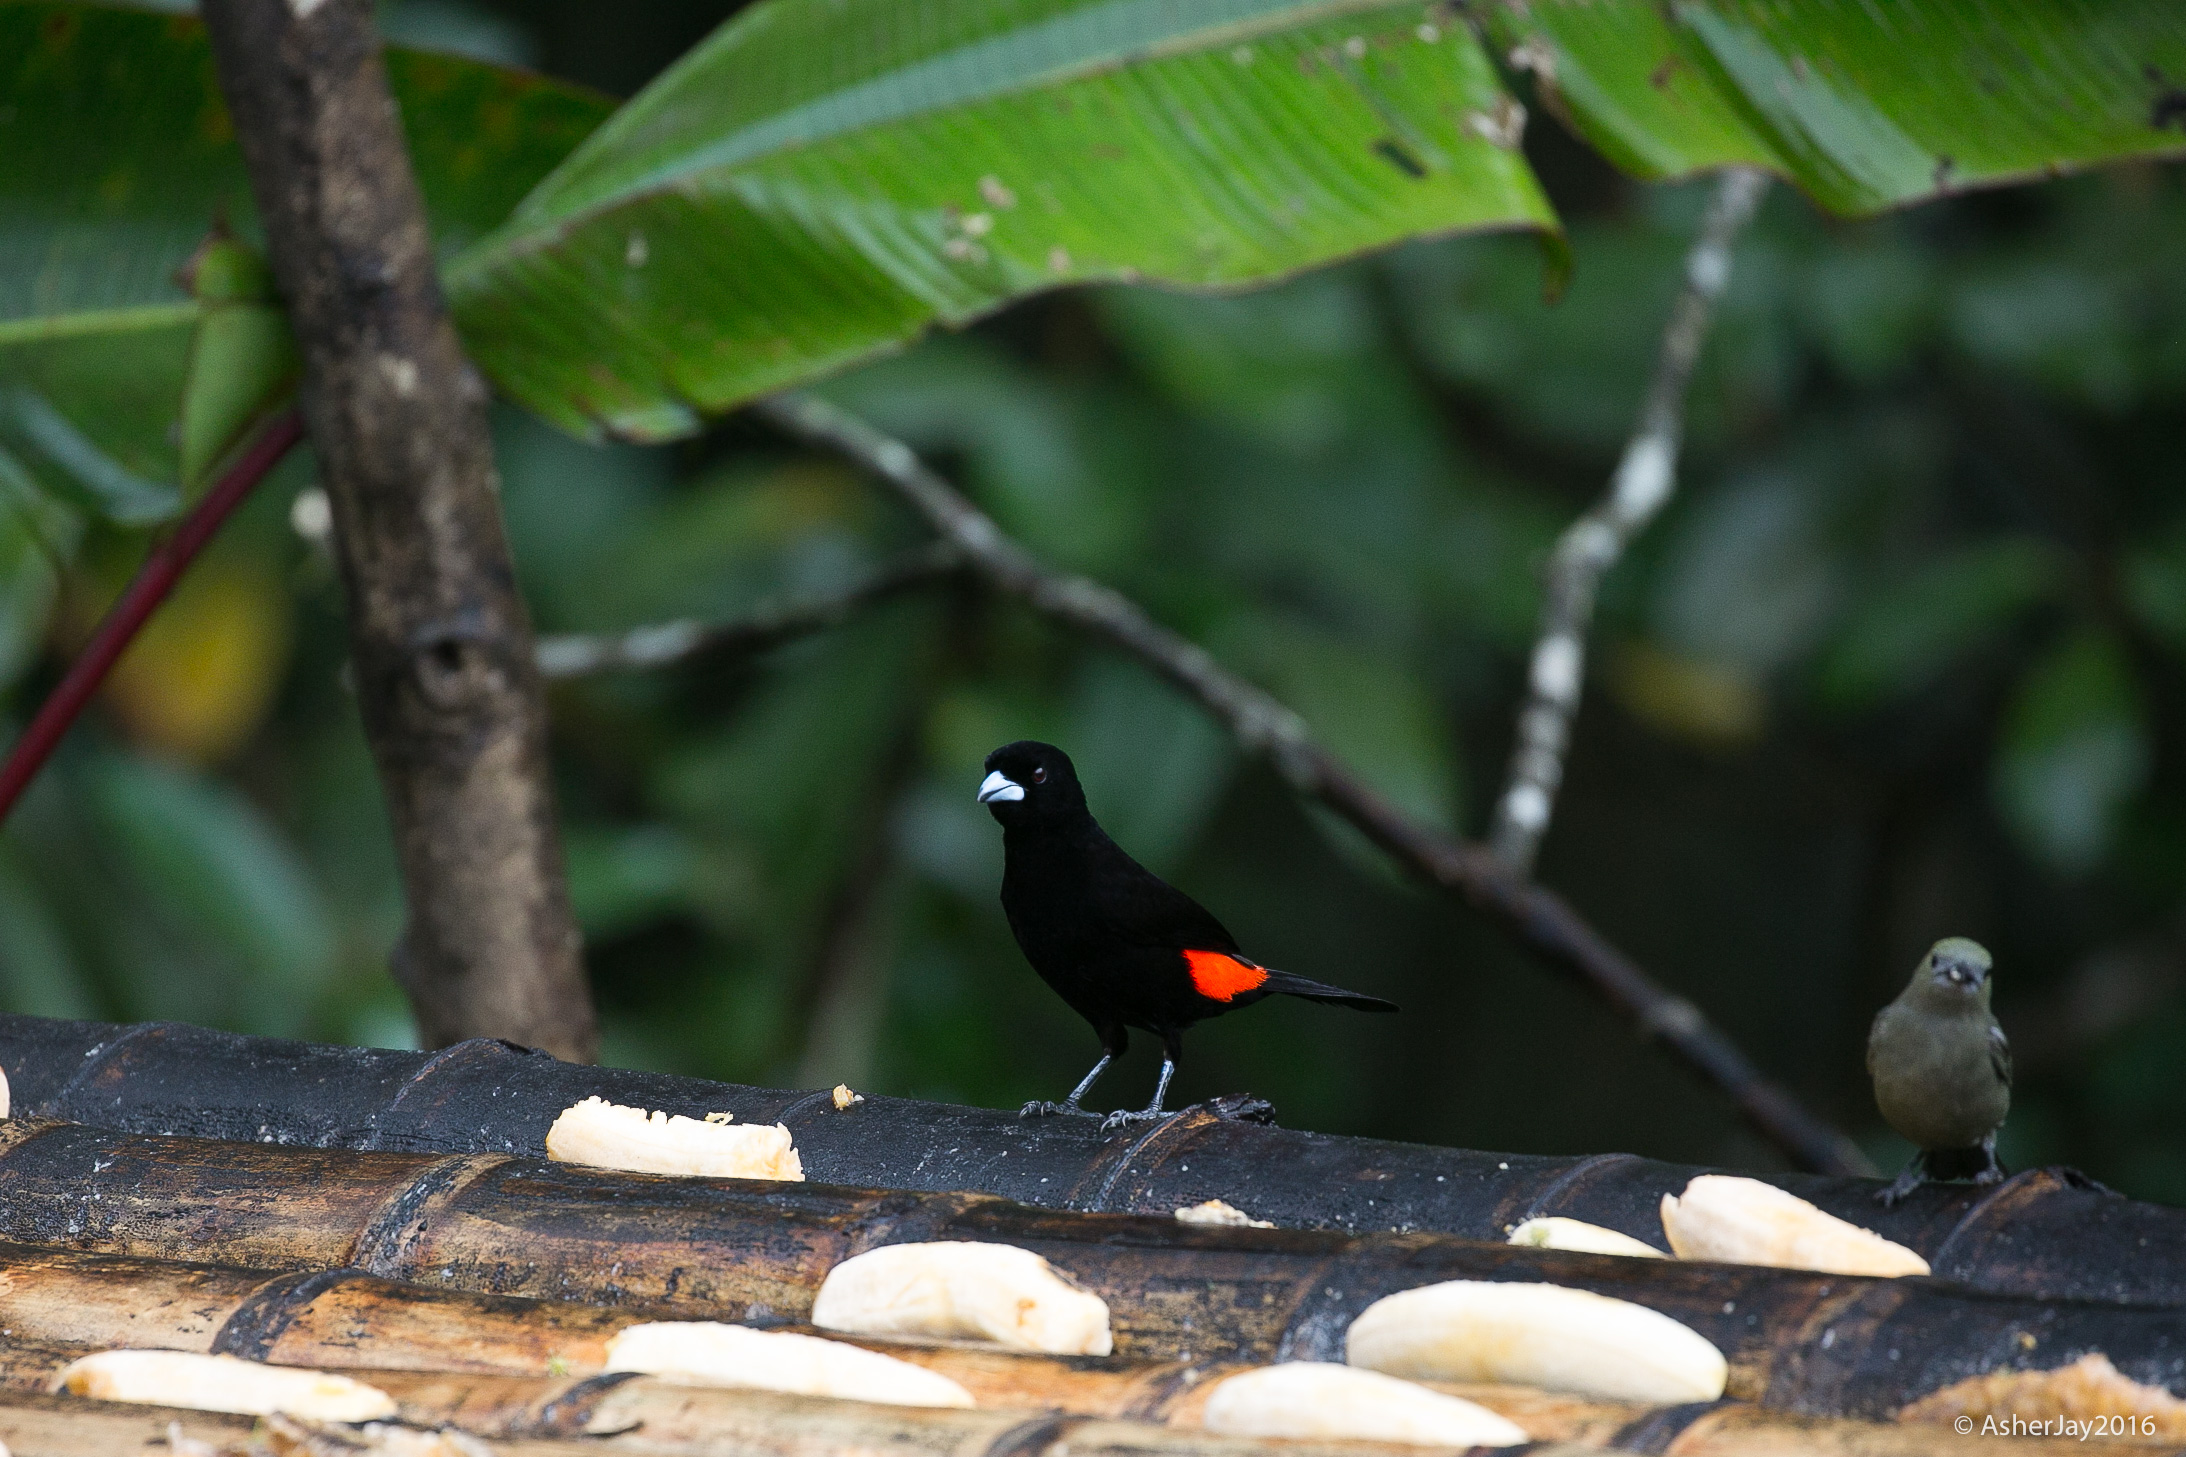 Flame-rumped Tanager male, with a conspicuous orange, visibly brilliant hot ass, perched on a banana laden feeder.